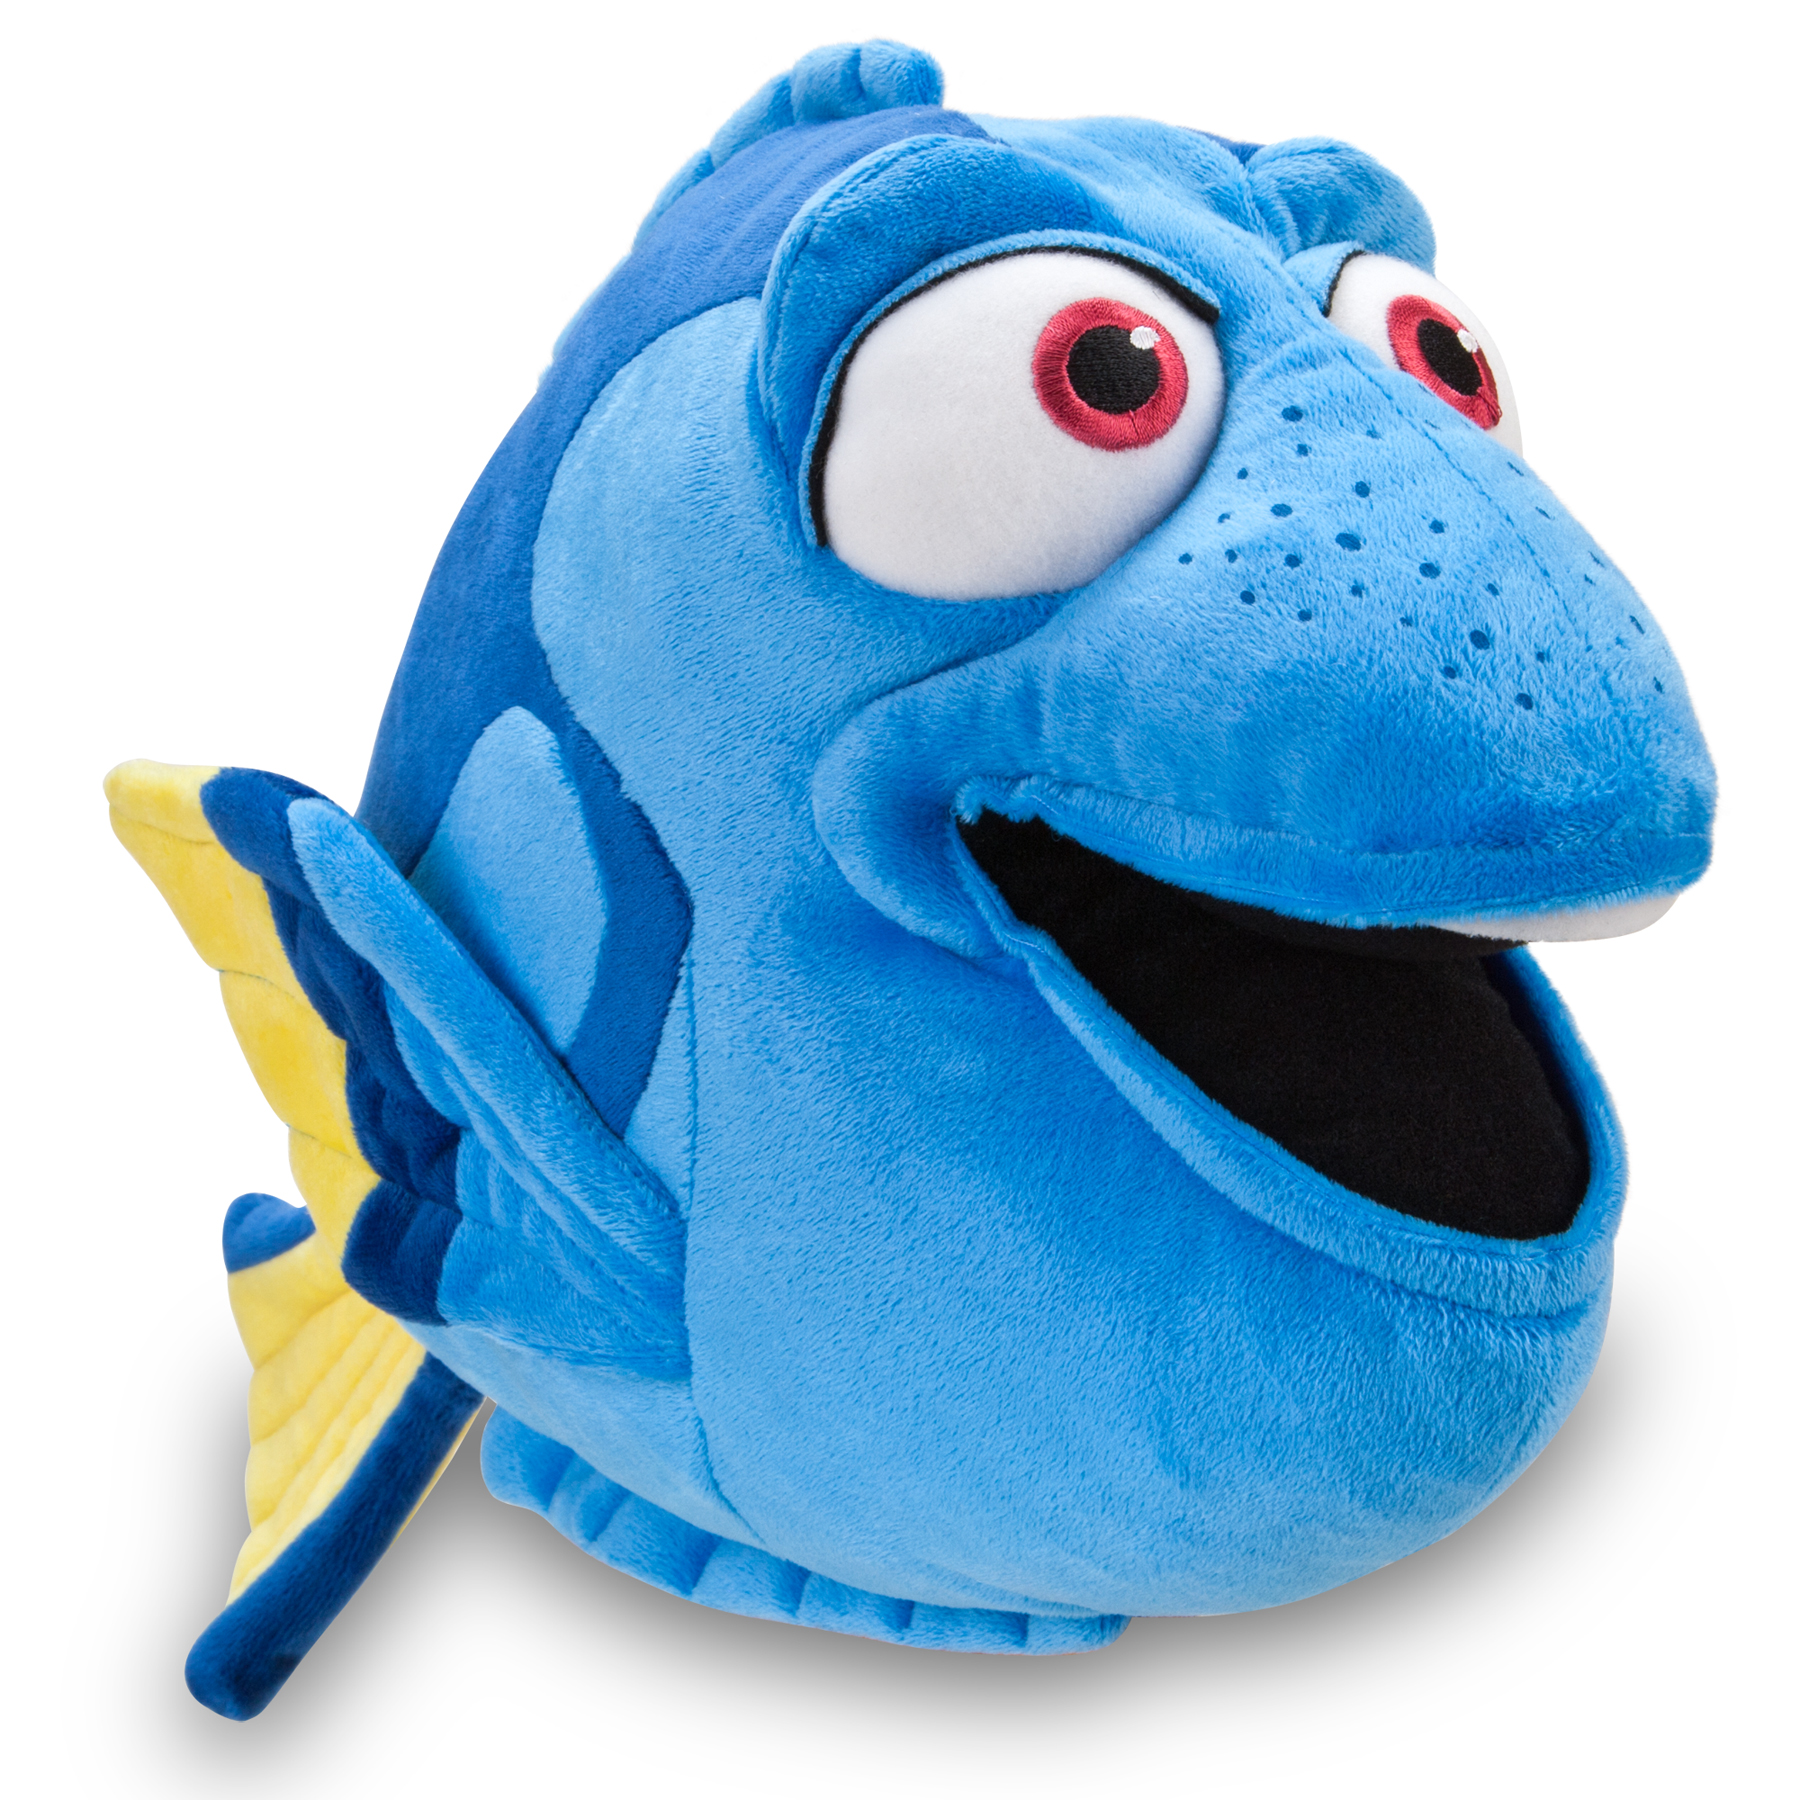 dory toy picture, dory toy image, dory toy wallpaper